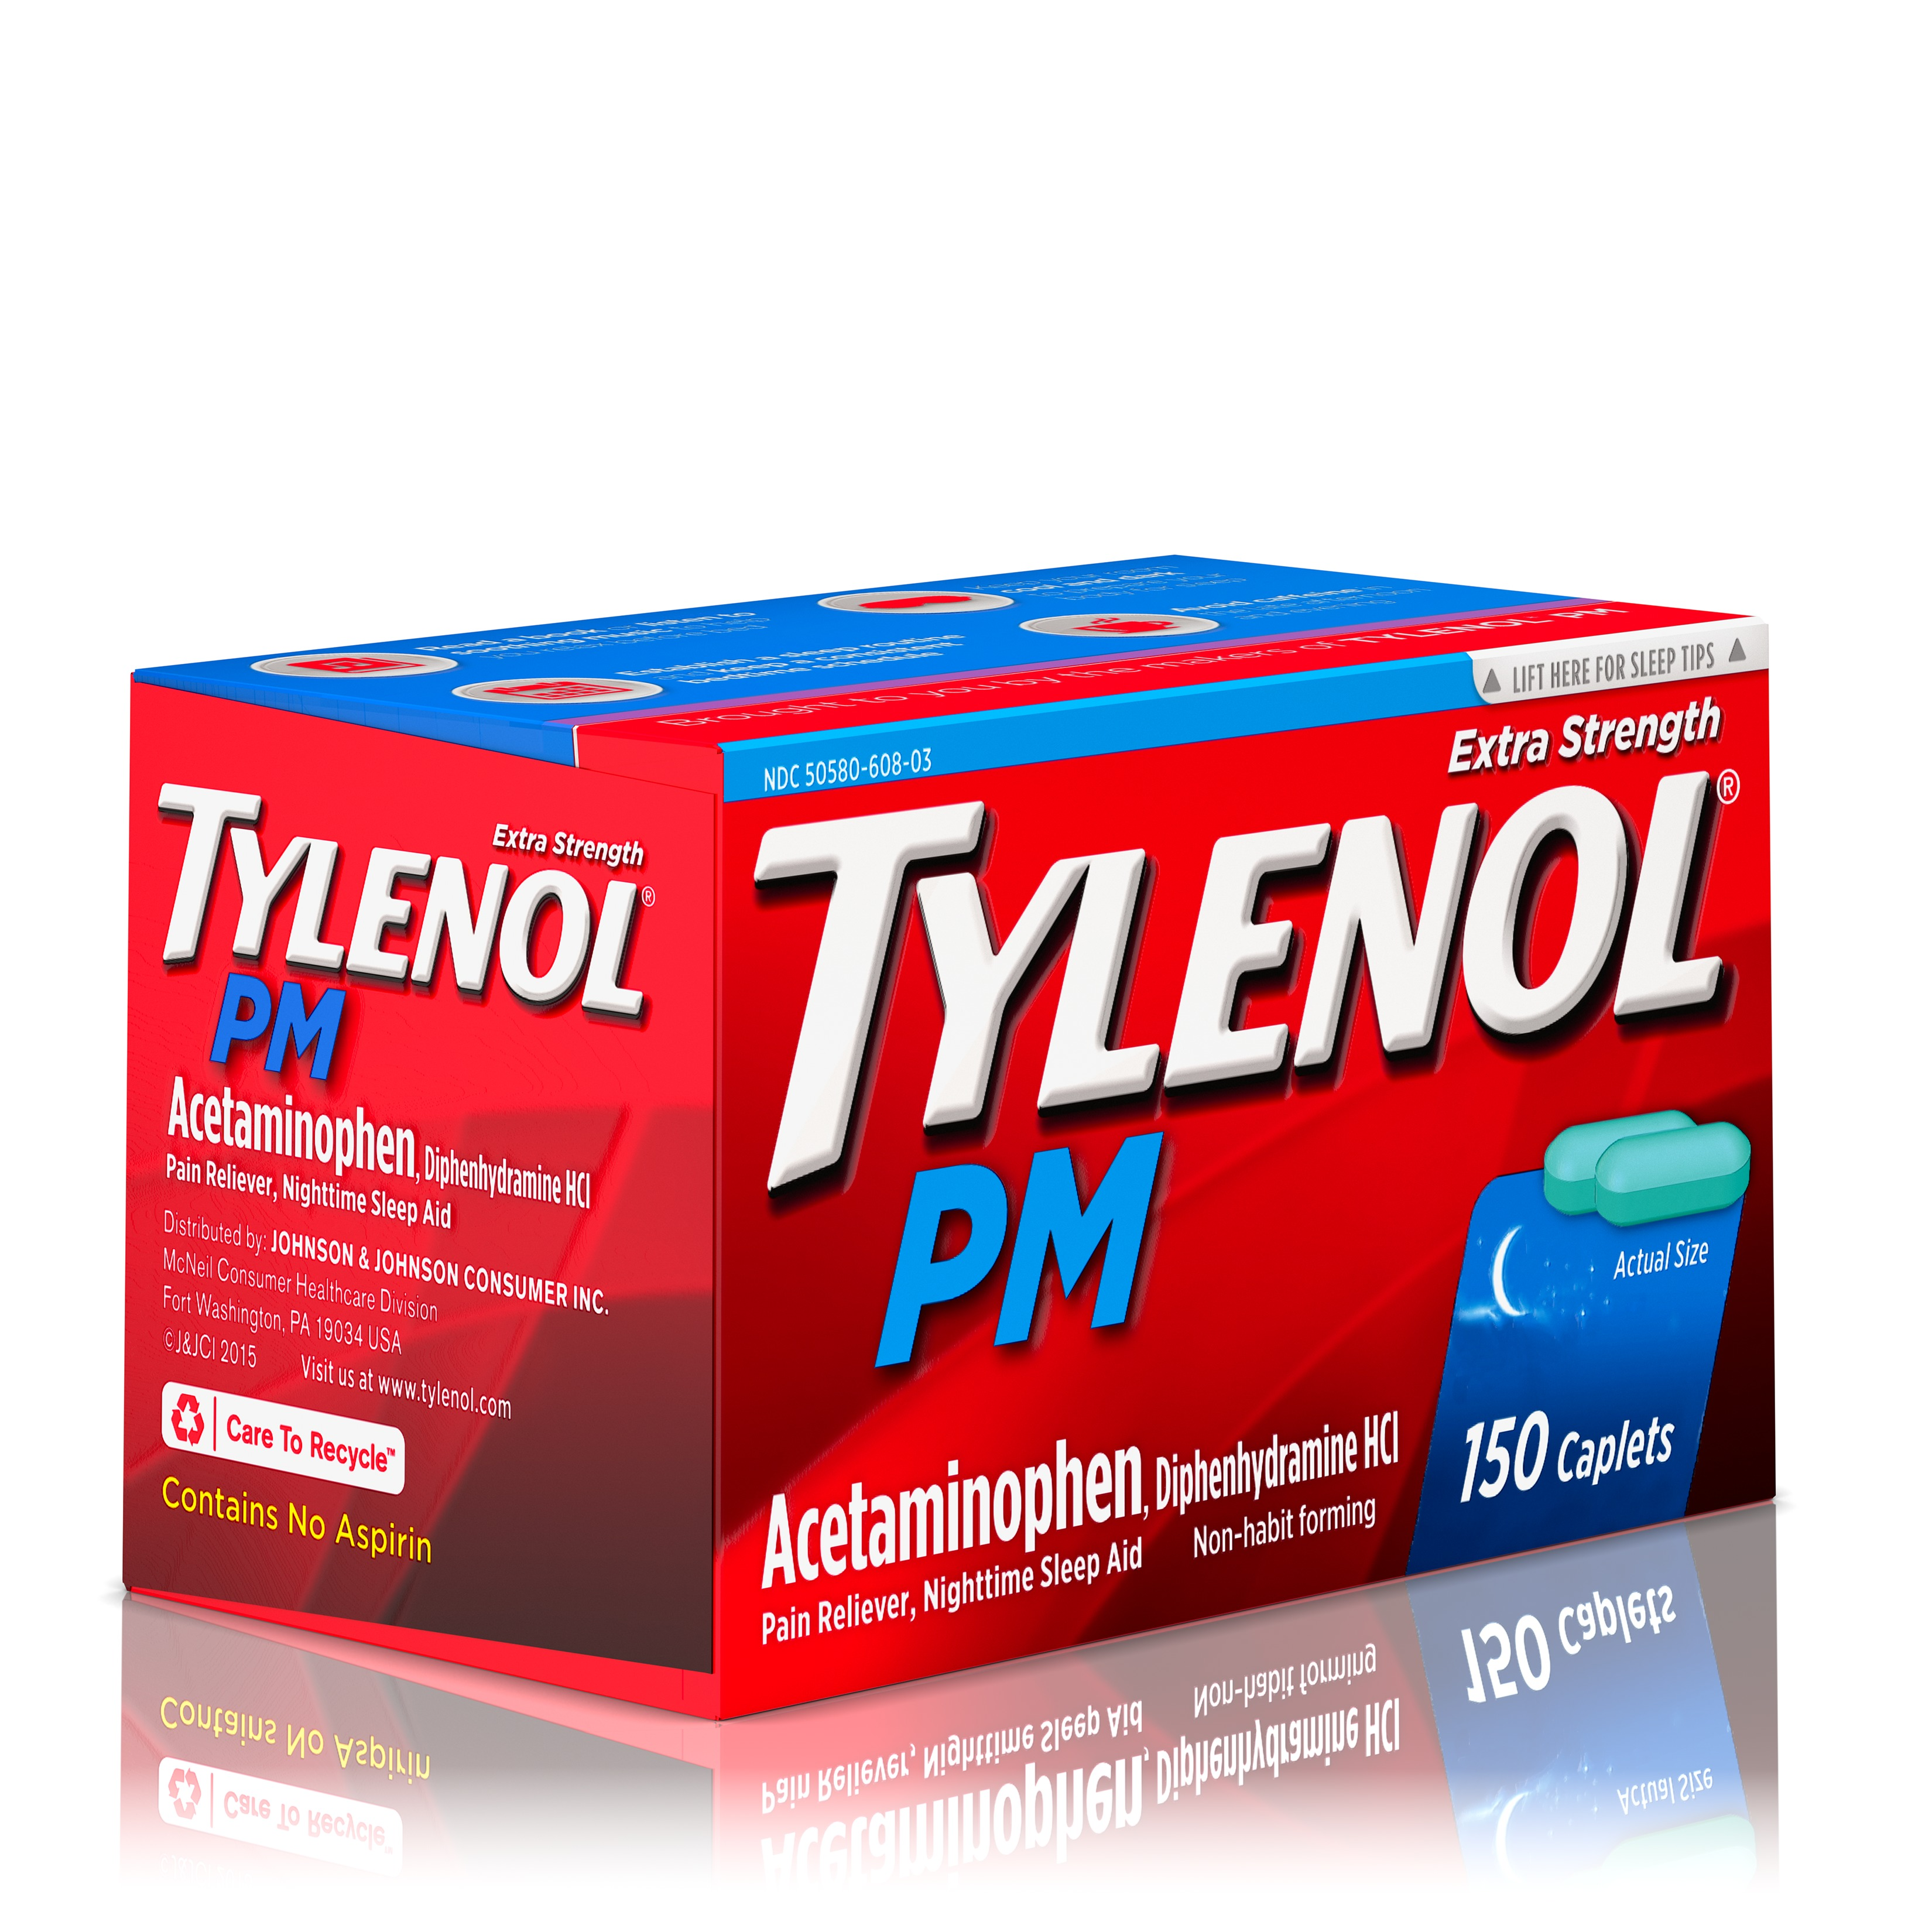 How Long Does Tylenol Pm Take To Work